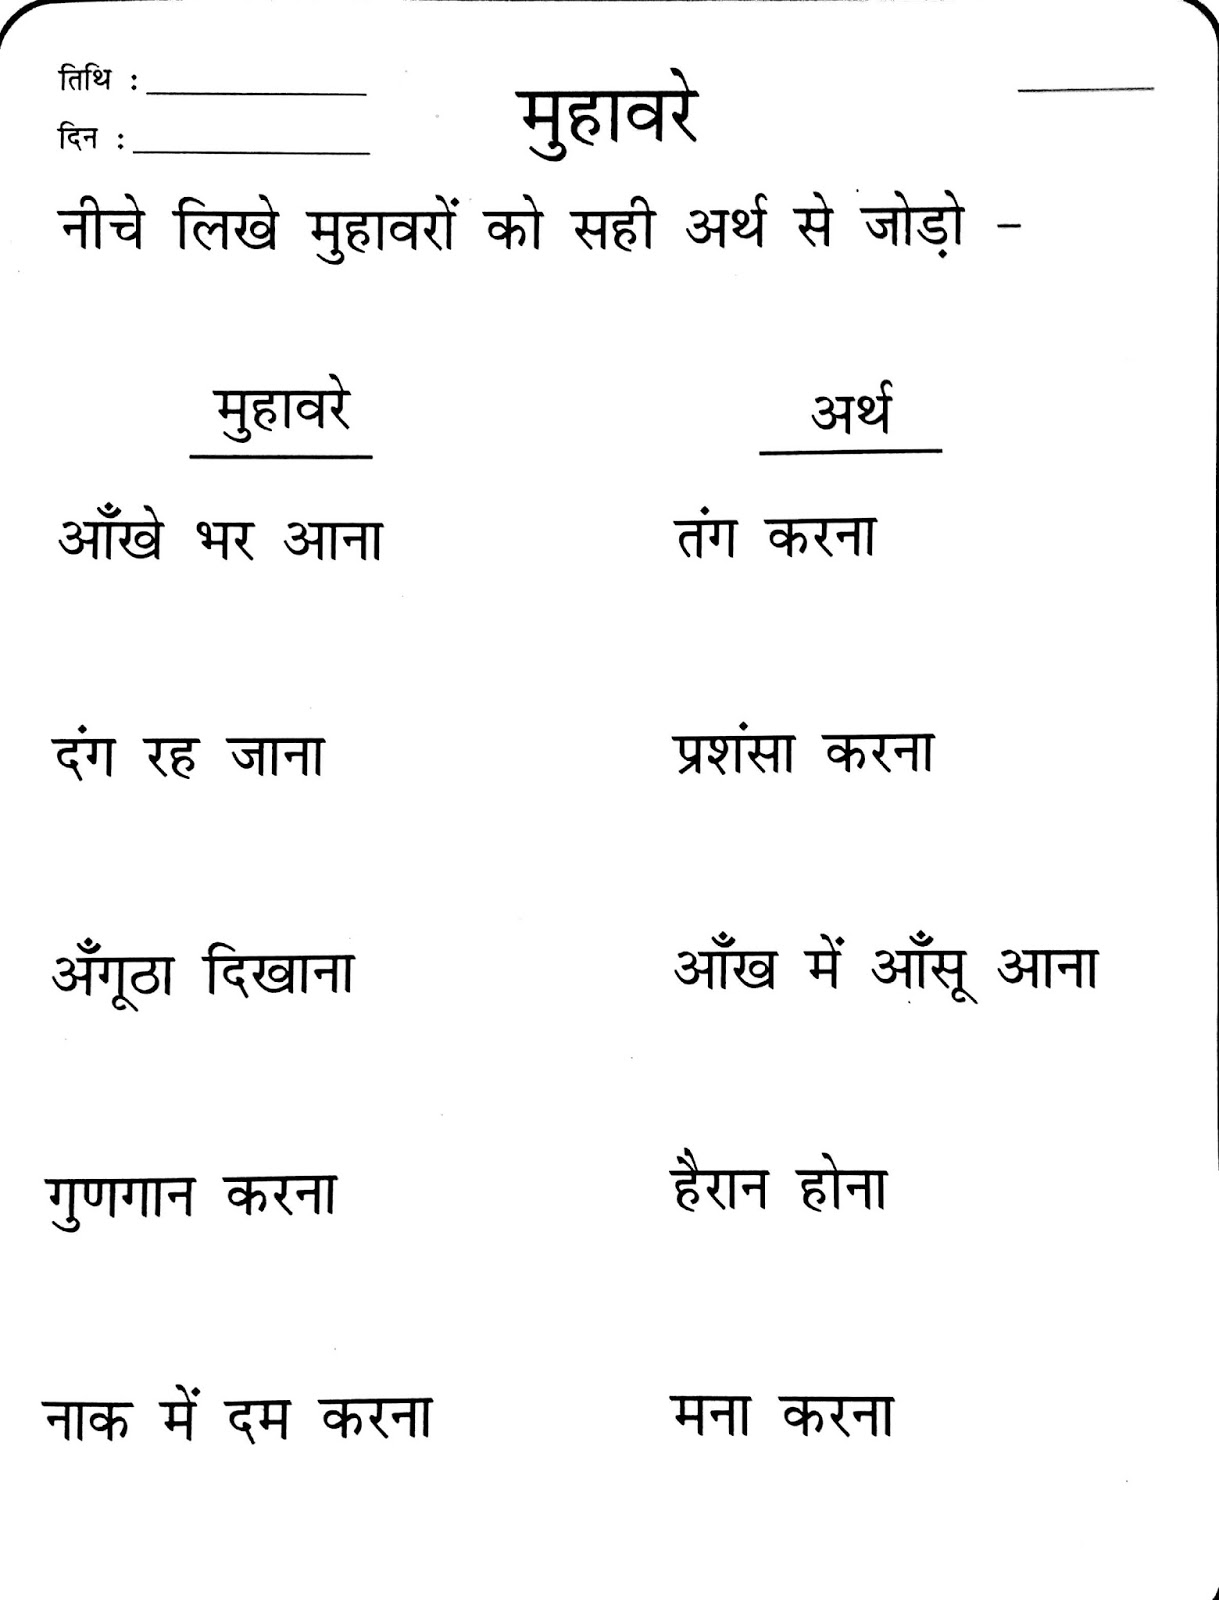 Hindi Grammar Work Sheet Collection For Classes 5 6 7 Amp 8 Idioms As Fill In The Blanks For